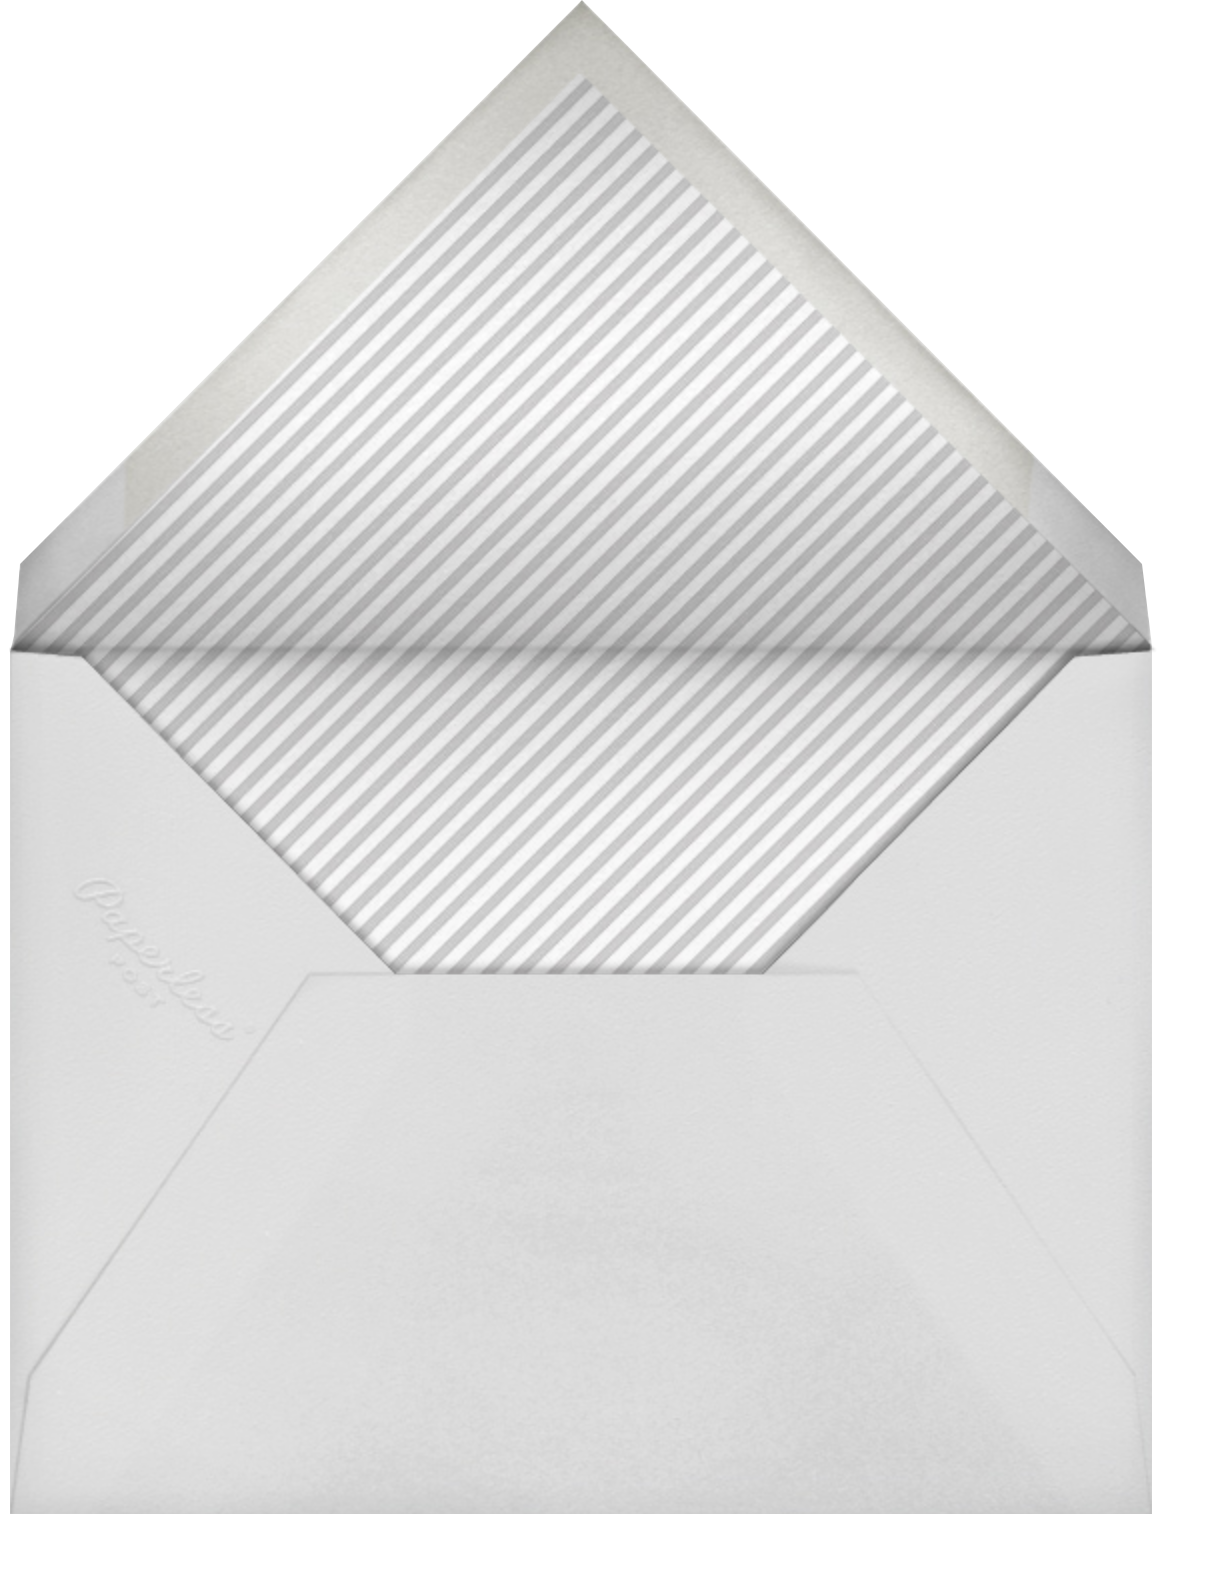 Two of a Kind - Paperless Post - Graduation cards - envelope back